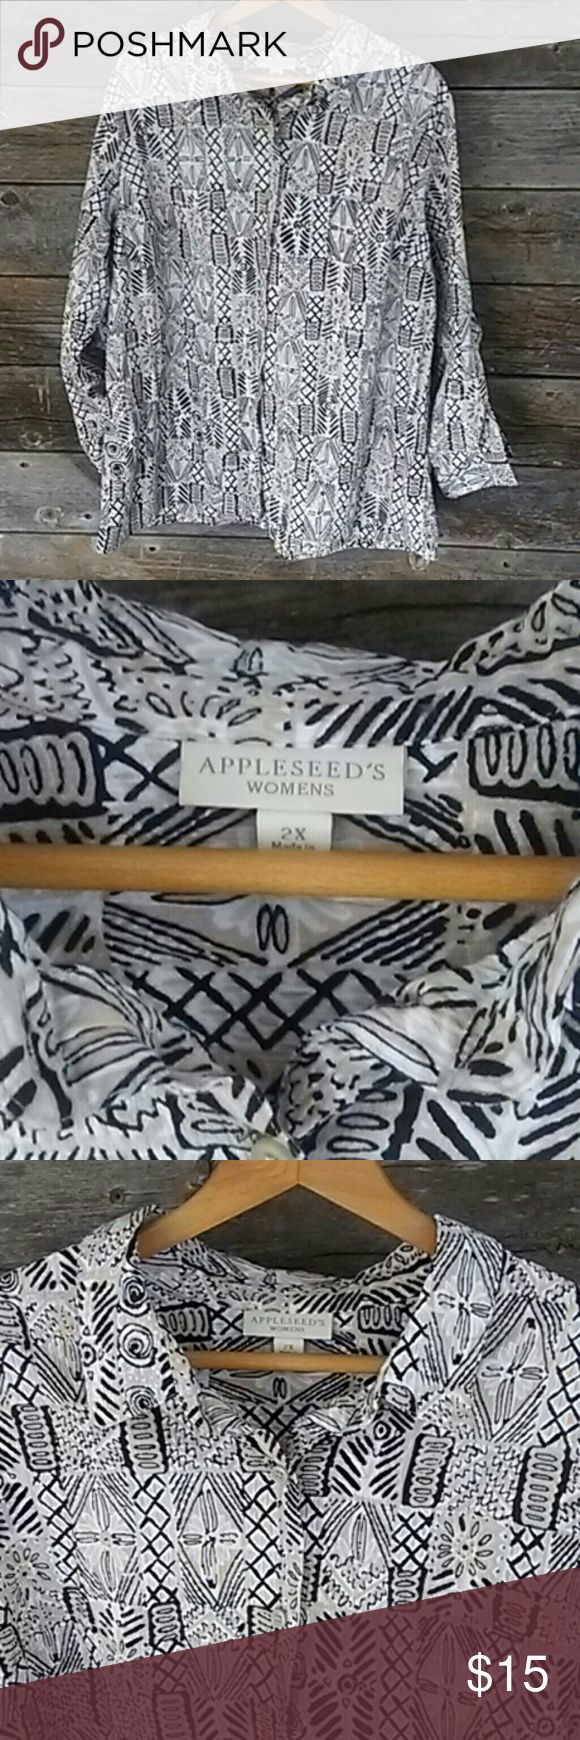 Appleseed's 2X Long Sleeve Tribal Long Sleeve Top Appleseed's 2X Long Sleeve Tribal Long Sleeve Top. Beautifully? designed perfect for spring and summer travels. Grab this shirt and your car keyes and explore the world.   Appleseed's has been providing classic, high quality apparel for women for over 70 years. You deserve the best of what life has to offer.   **Please take a look at my other LB items**  **All Lane Bryant cloths below $15.** Lane Bryant Tops Button Down Shirts